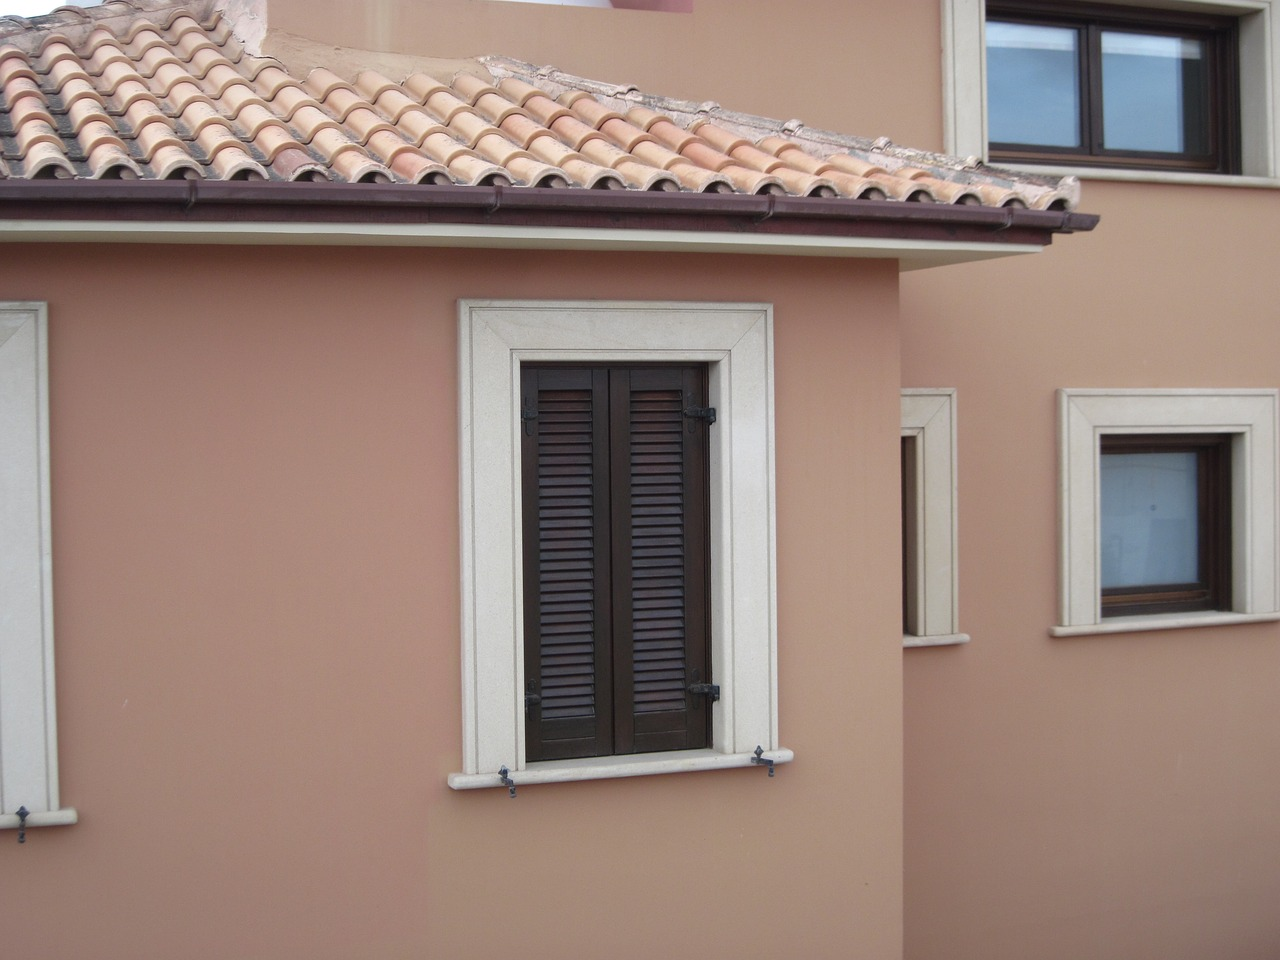 Hurricane Shutters Impact Windows Which is Best Option for Home